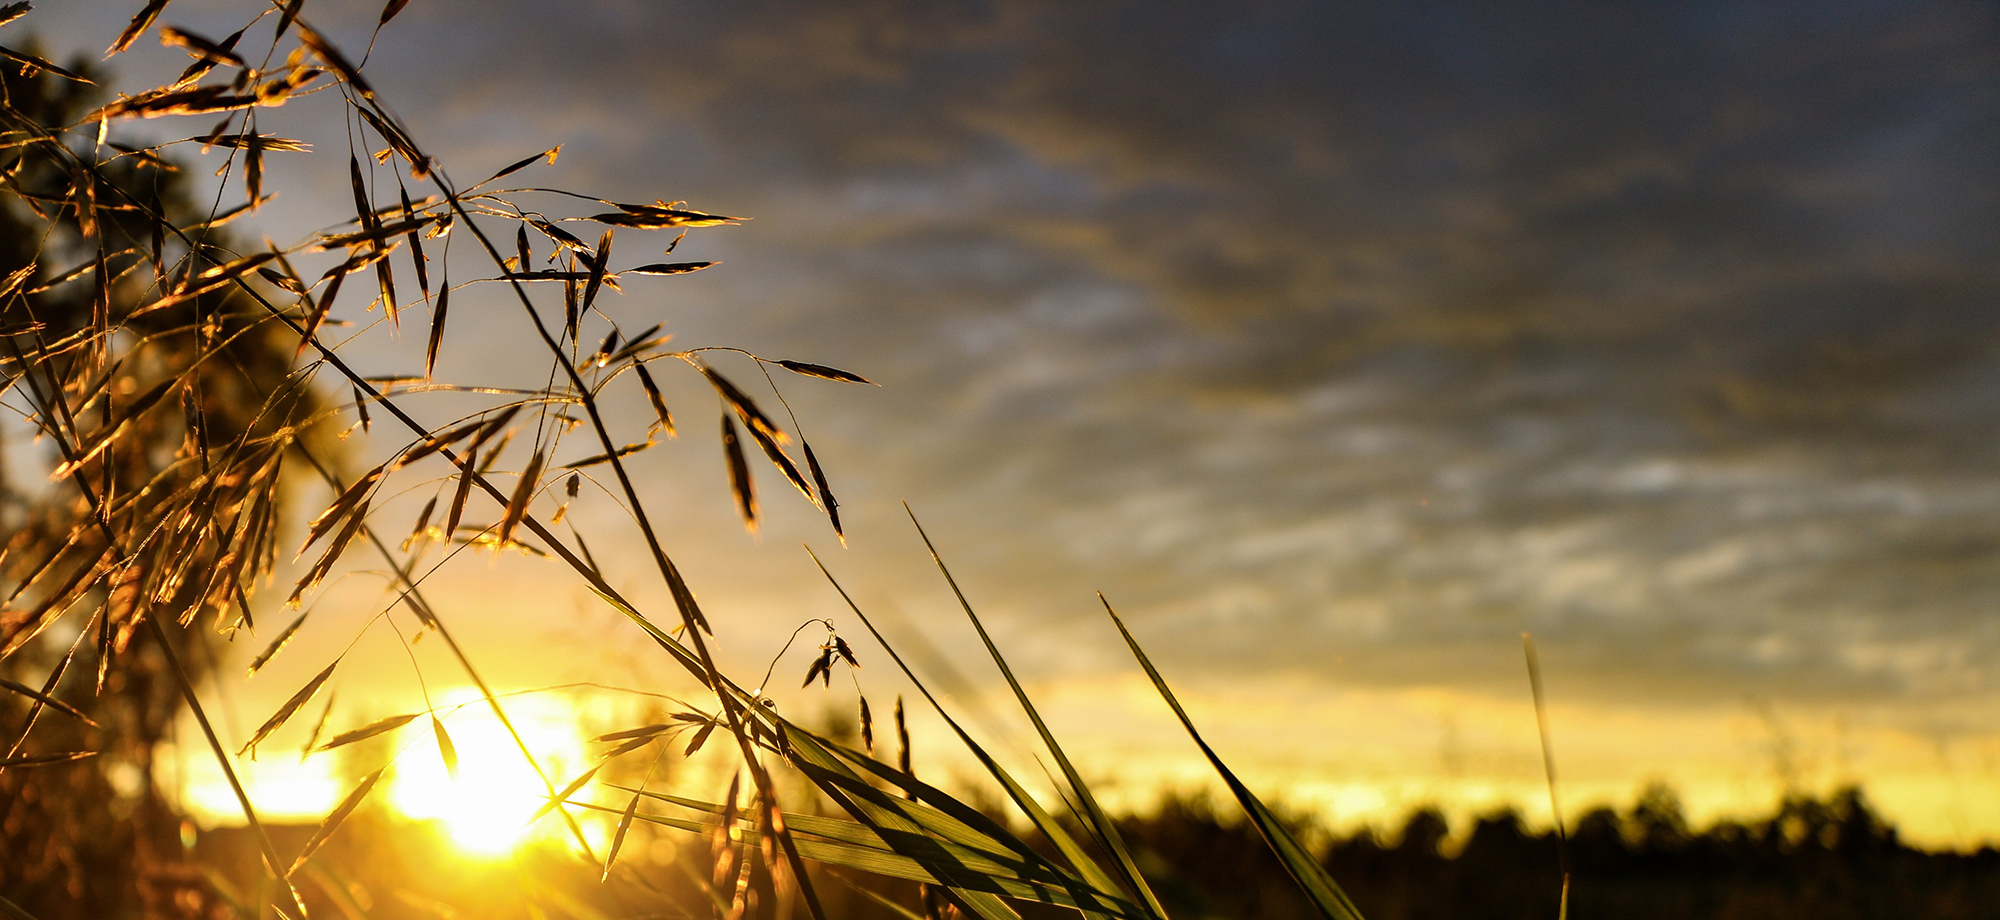 Sunset in a wheat field - light in the world